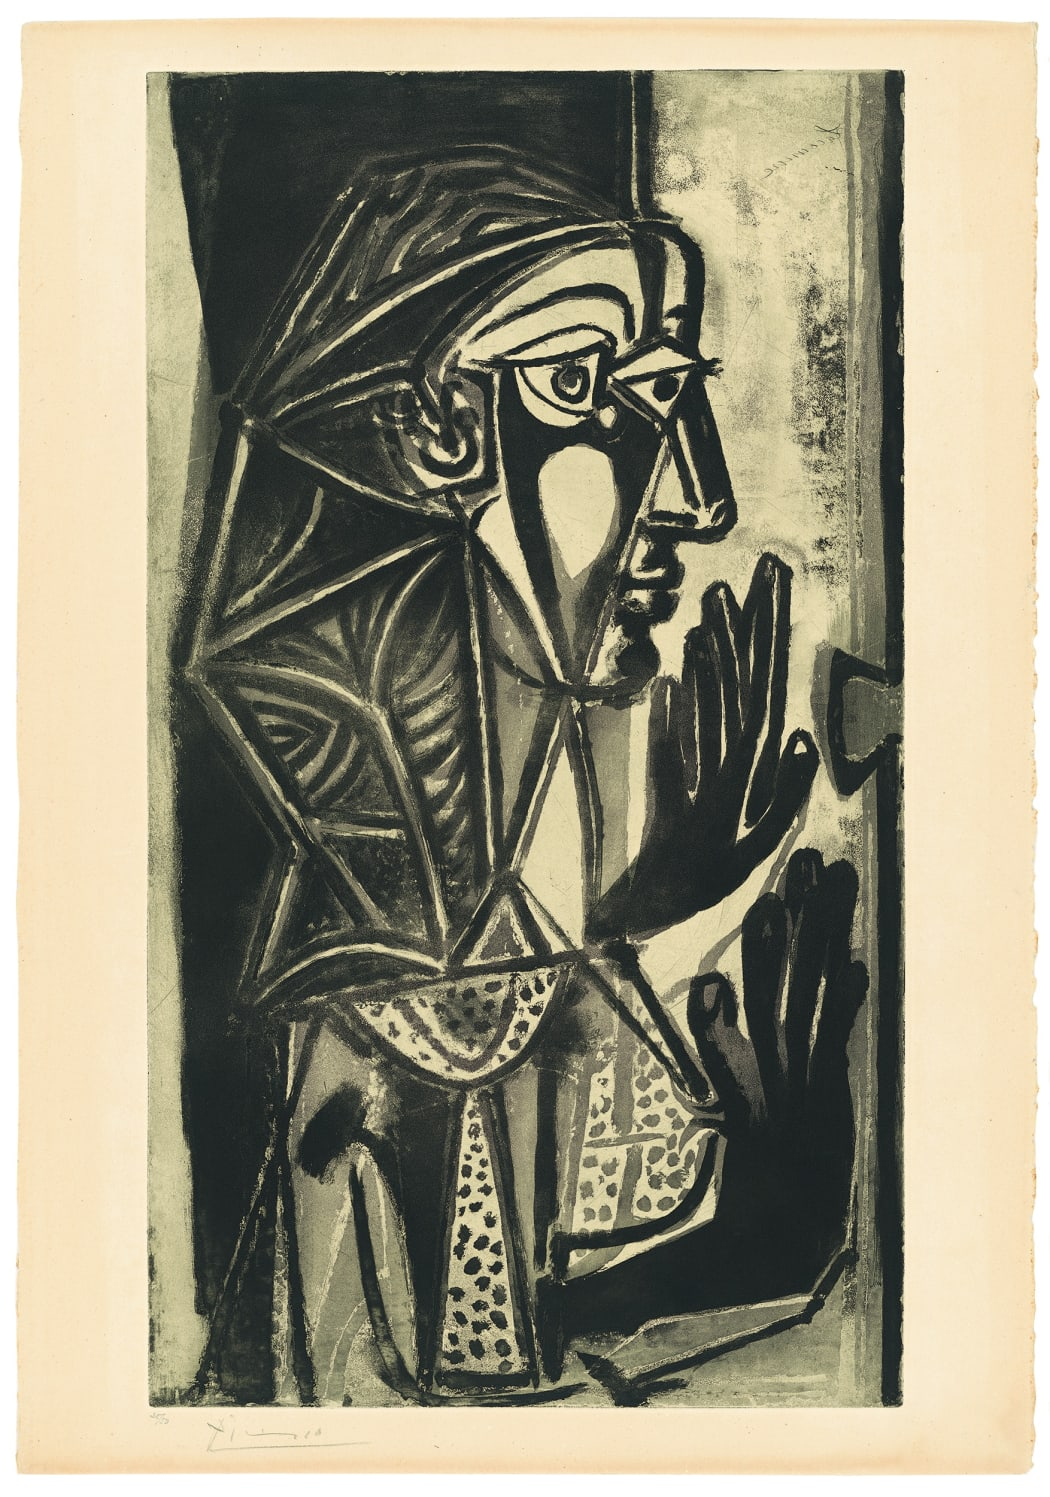 La Femme a la Fenêtre 1949 (Bloch 695), Sugarlift aquatint, 32 5/8 x 18 1/2 inches